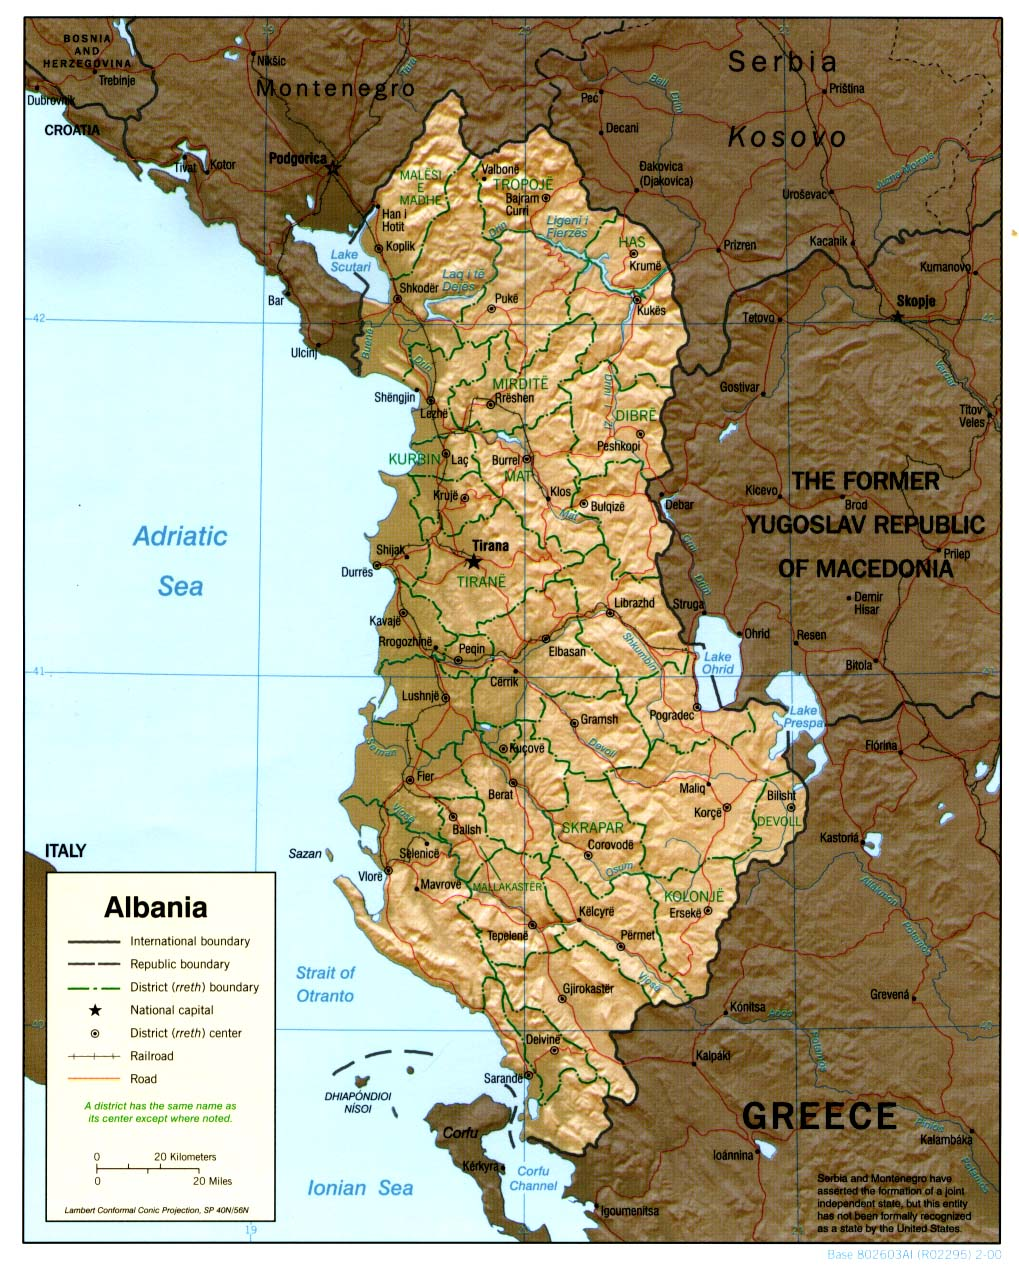 Atlas of albania wikimedia commons albania reliefg shaded relief map of albania publicscrutiny Gallery